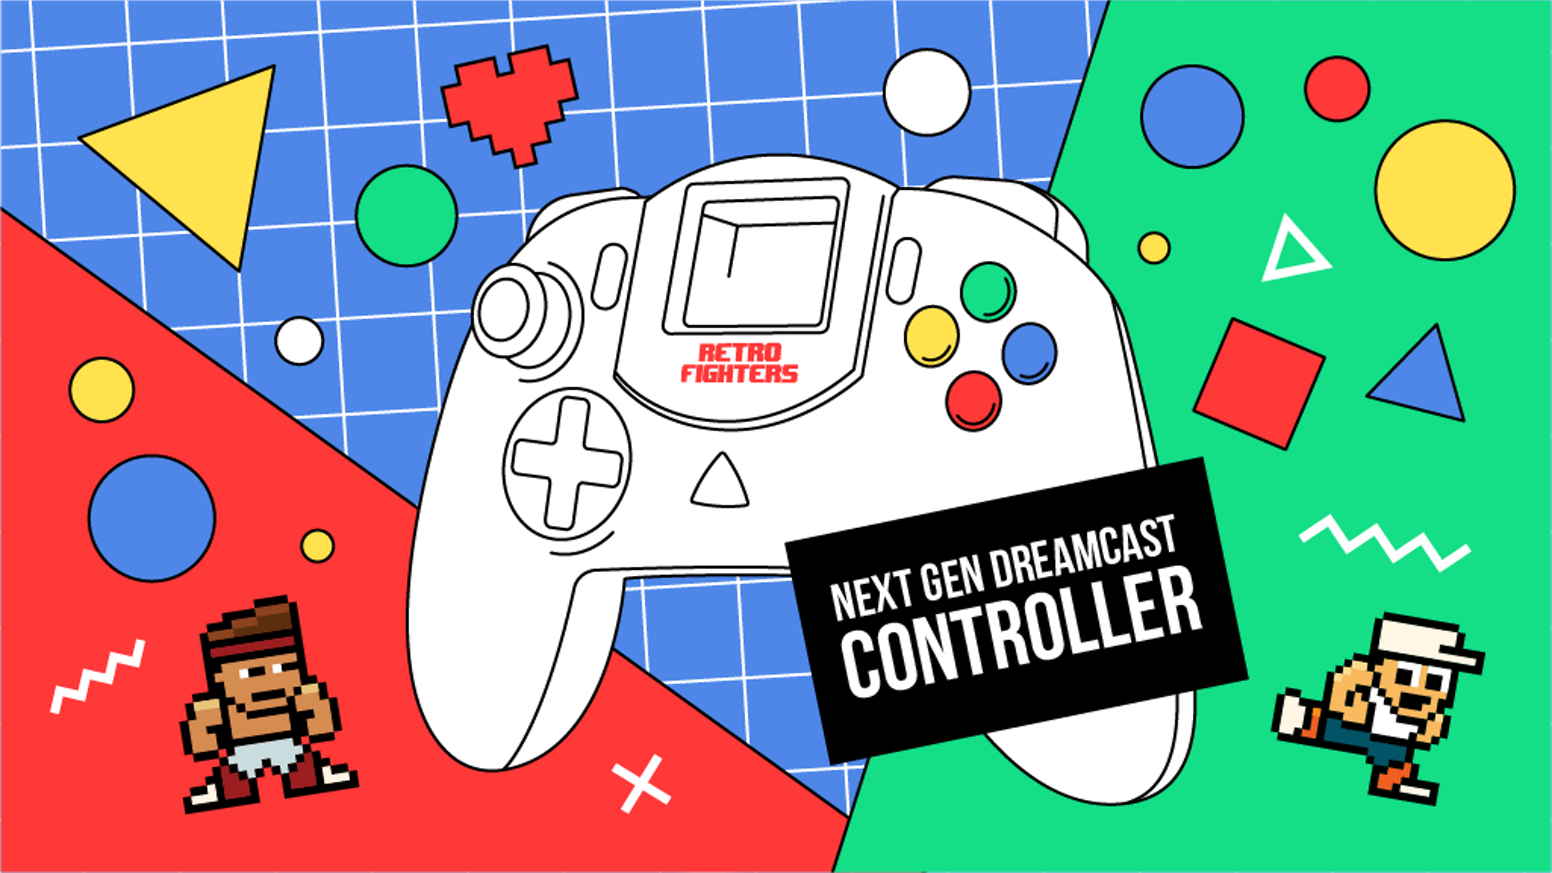 Creating a modern and ergonomic designed Dreamcast Controller